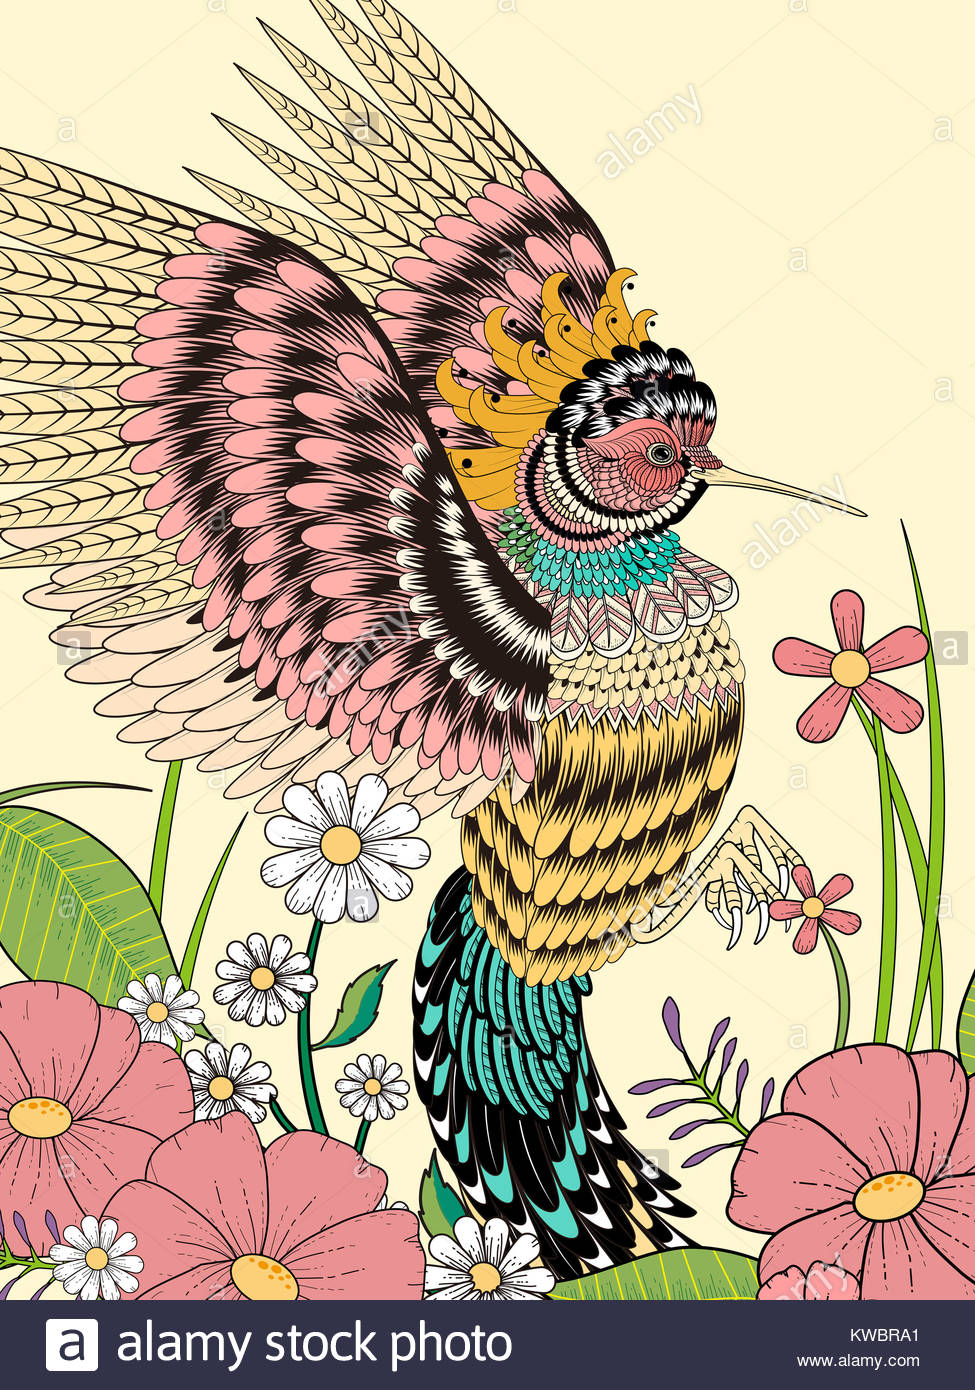 lovely hummingbird coloring page in exquisite line KWBRA1